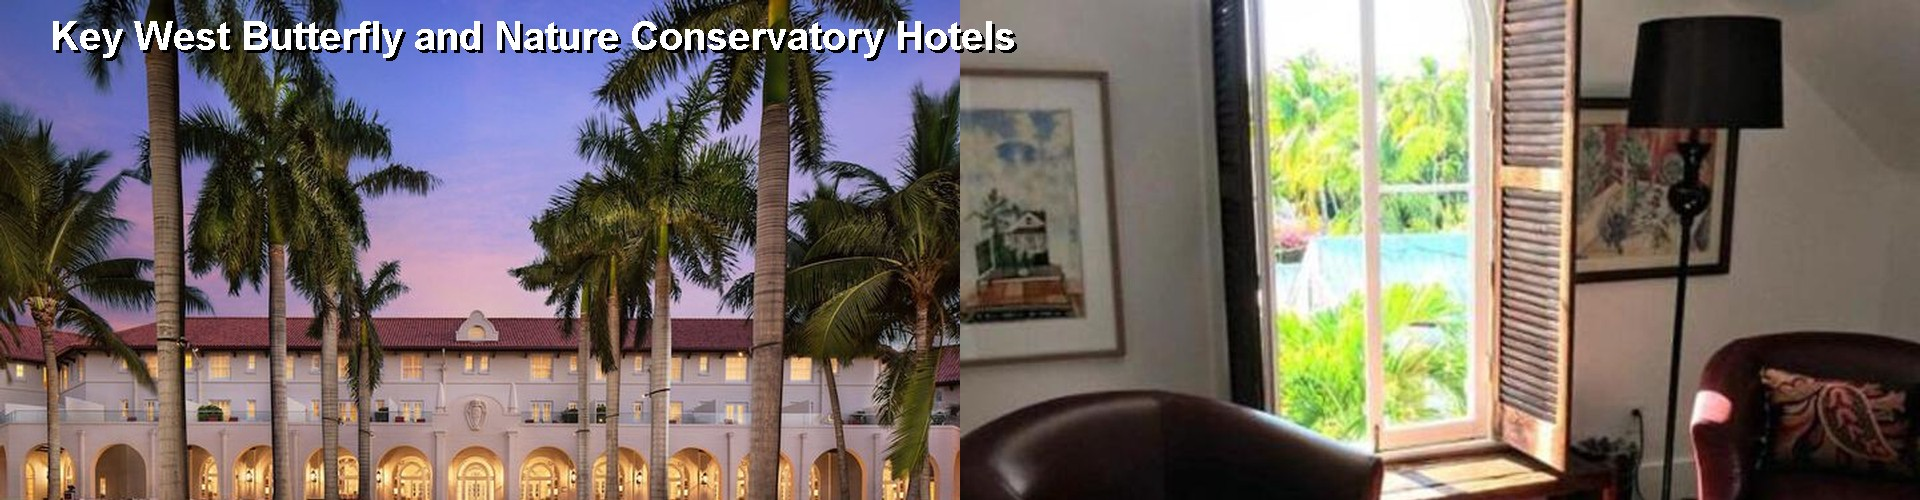 5 Best Hotels near Key West Butterfly and Nature Conservatory